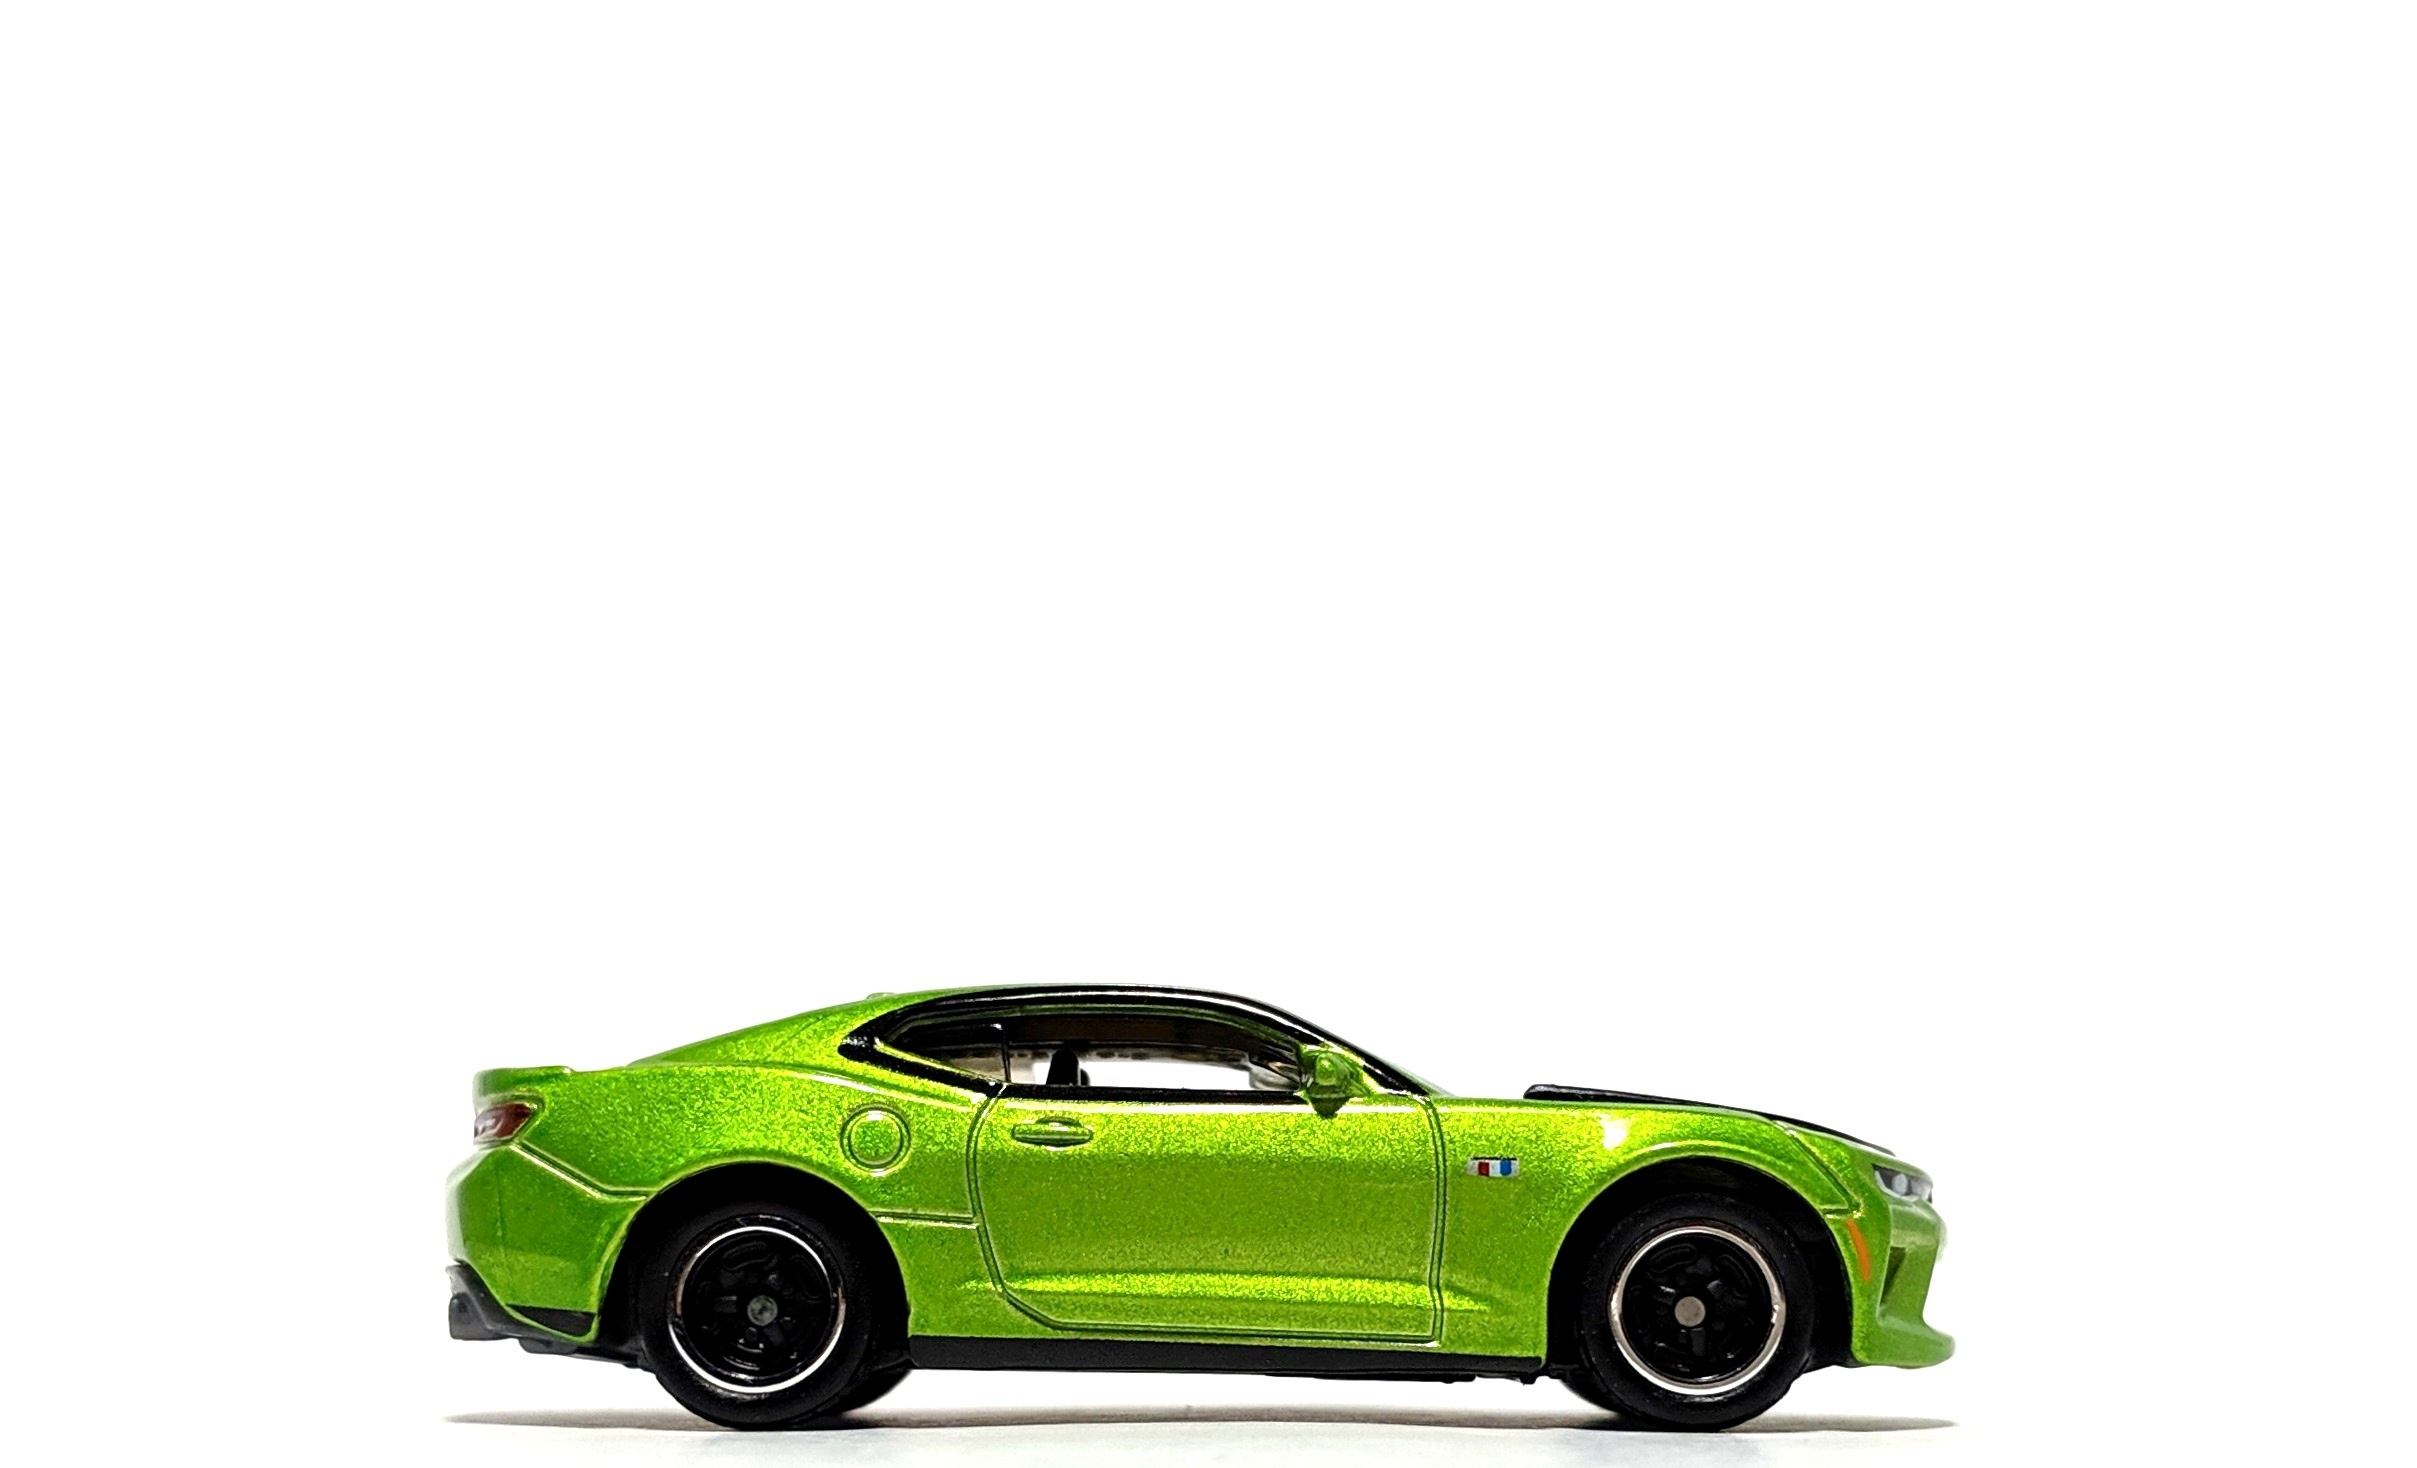 '17 Chevrolet Camaro - Matchbox 50th Anniversary Superfast